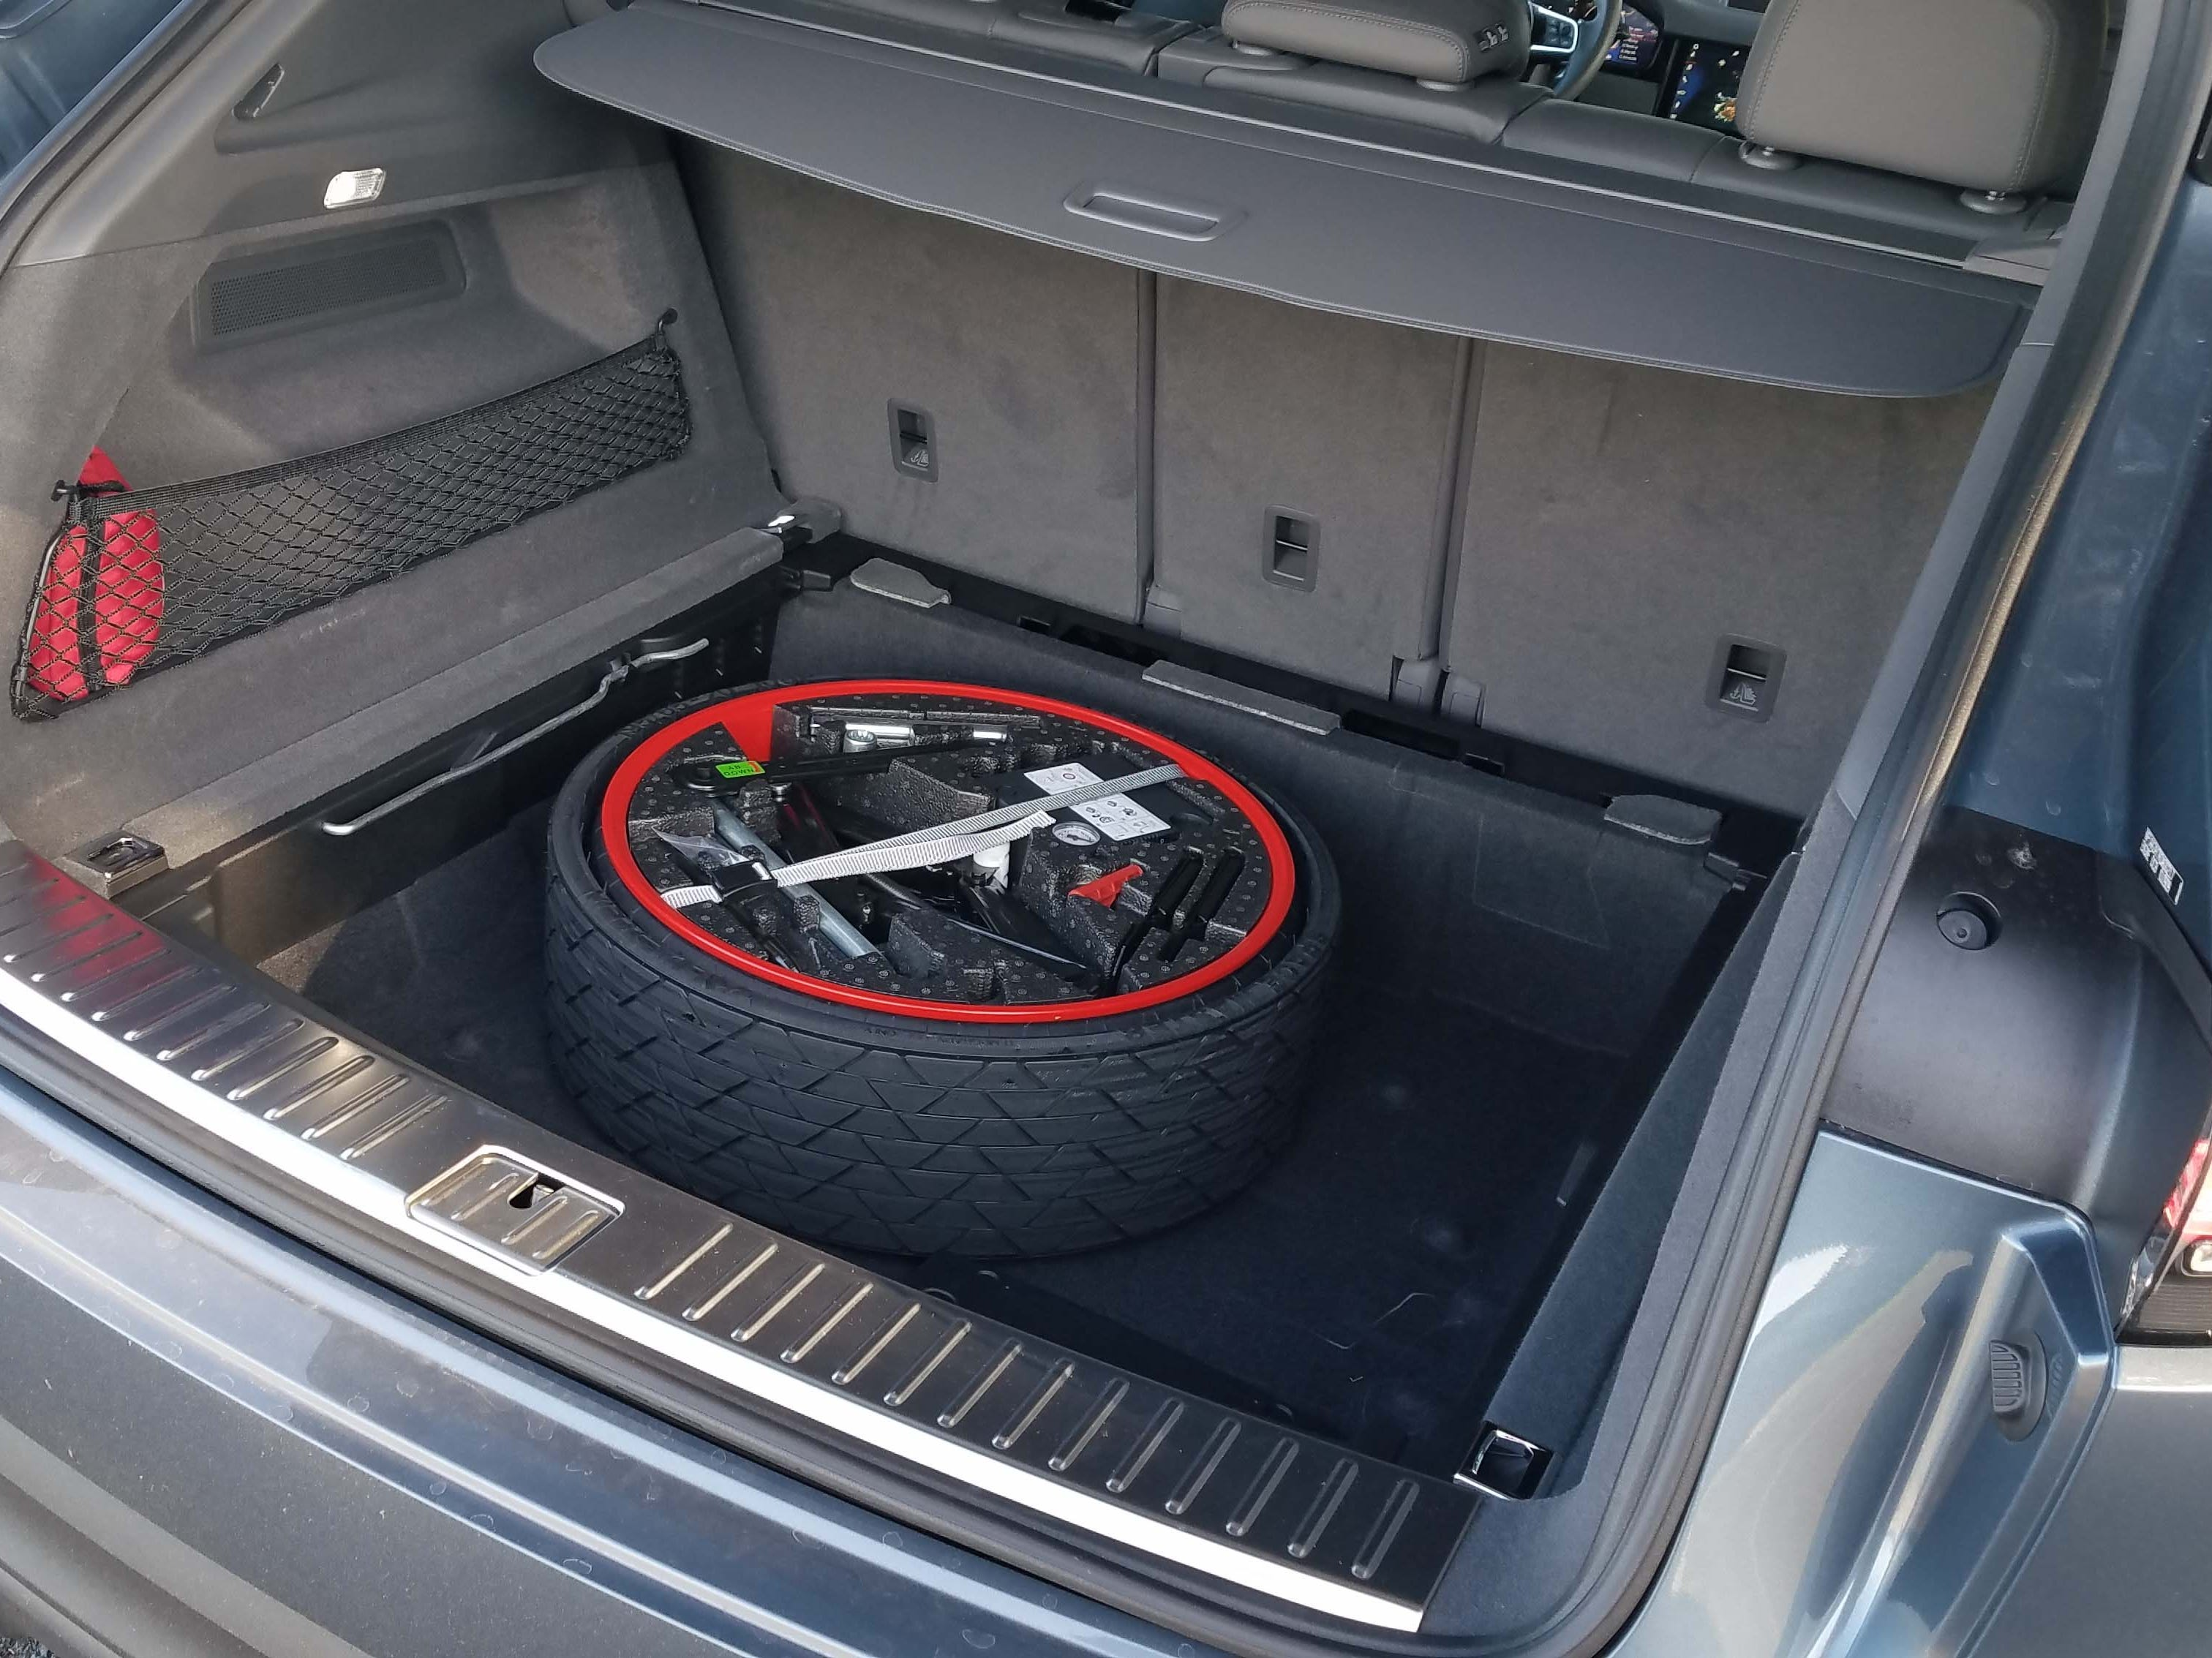 Spare tire for when you run over a sharp object while off-roading your 2019 Porsche Cayenne.